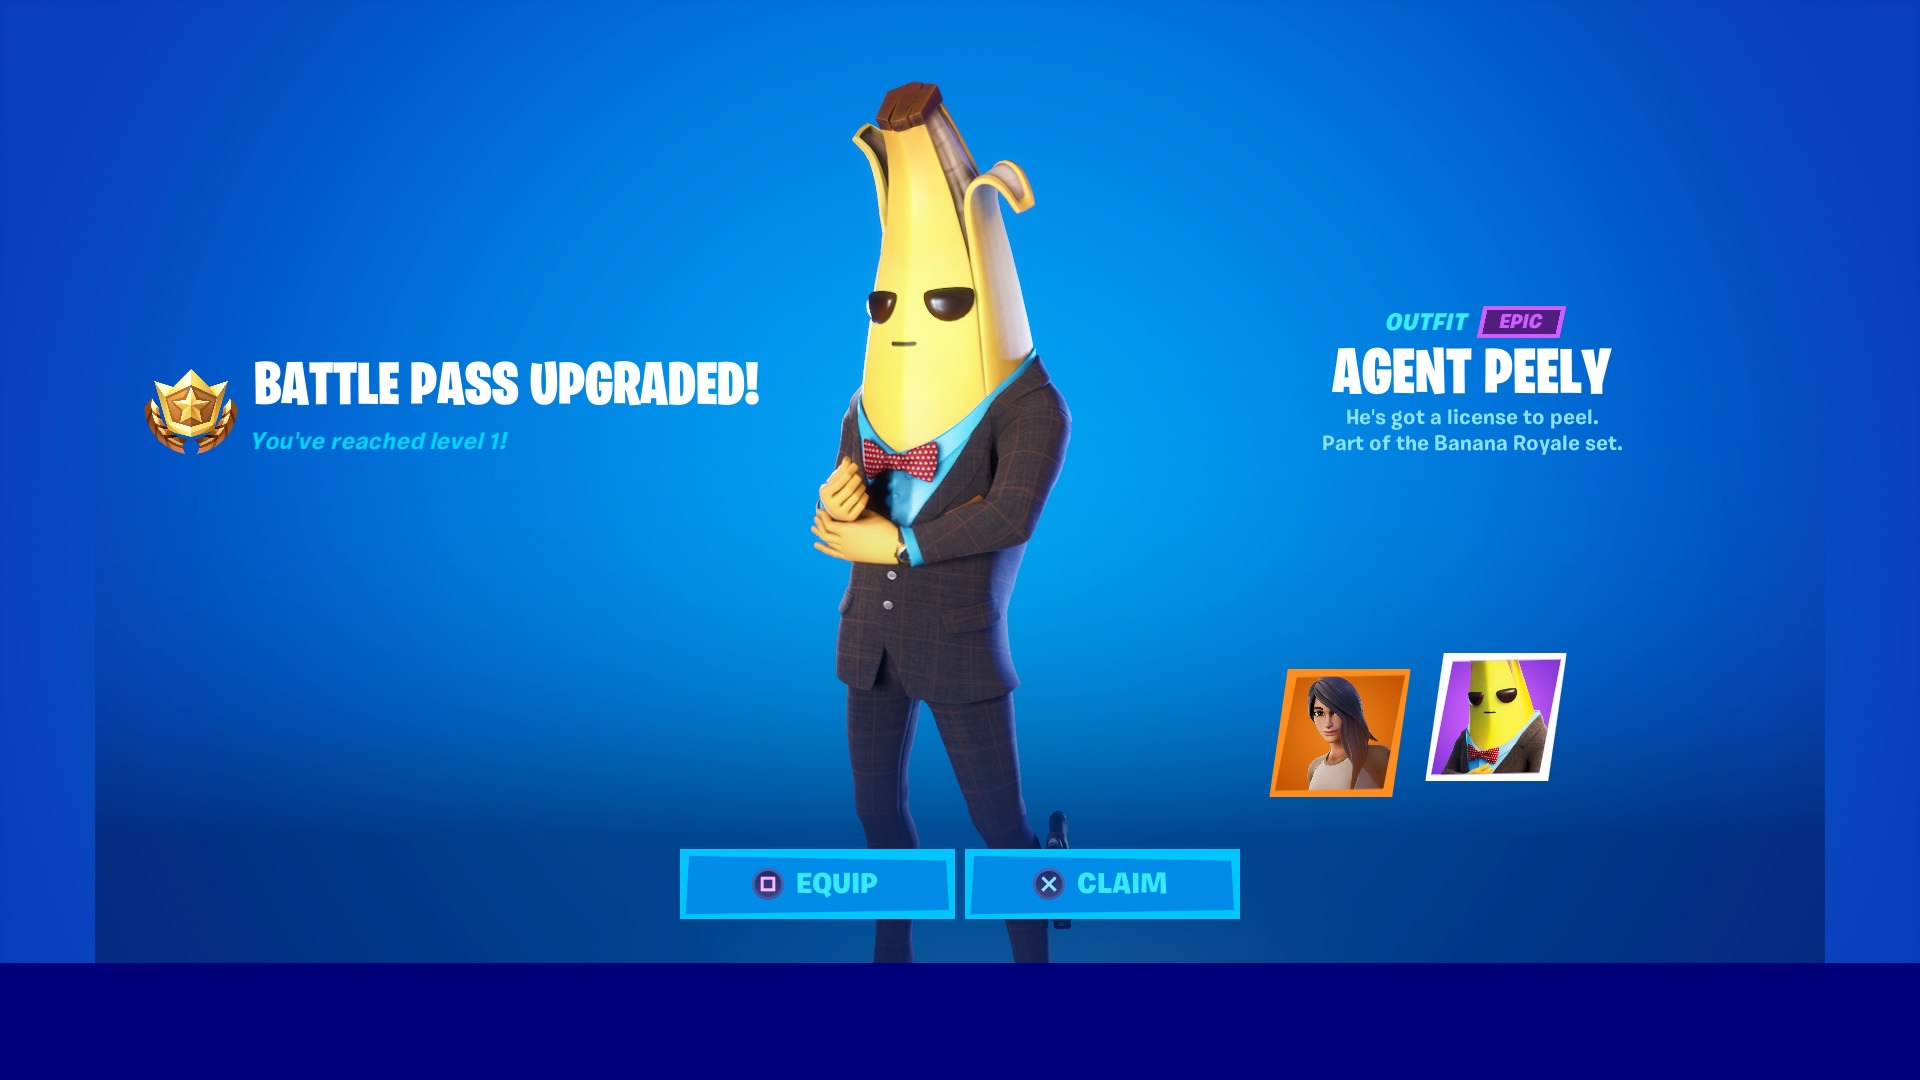 fortnite agent peely wallpaper 70680